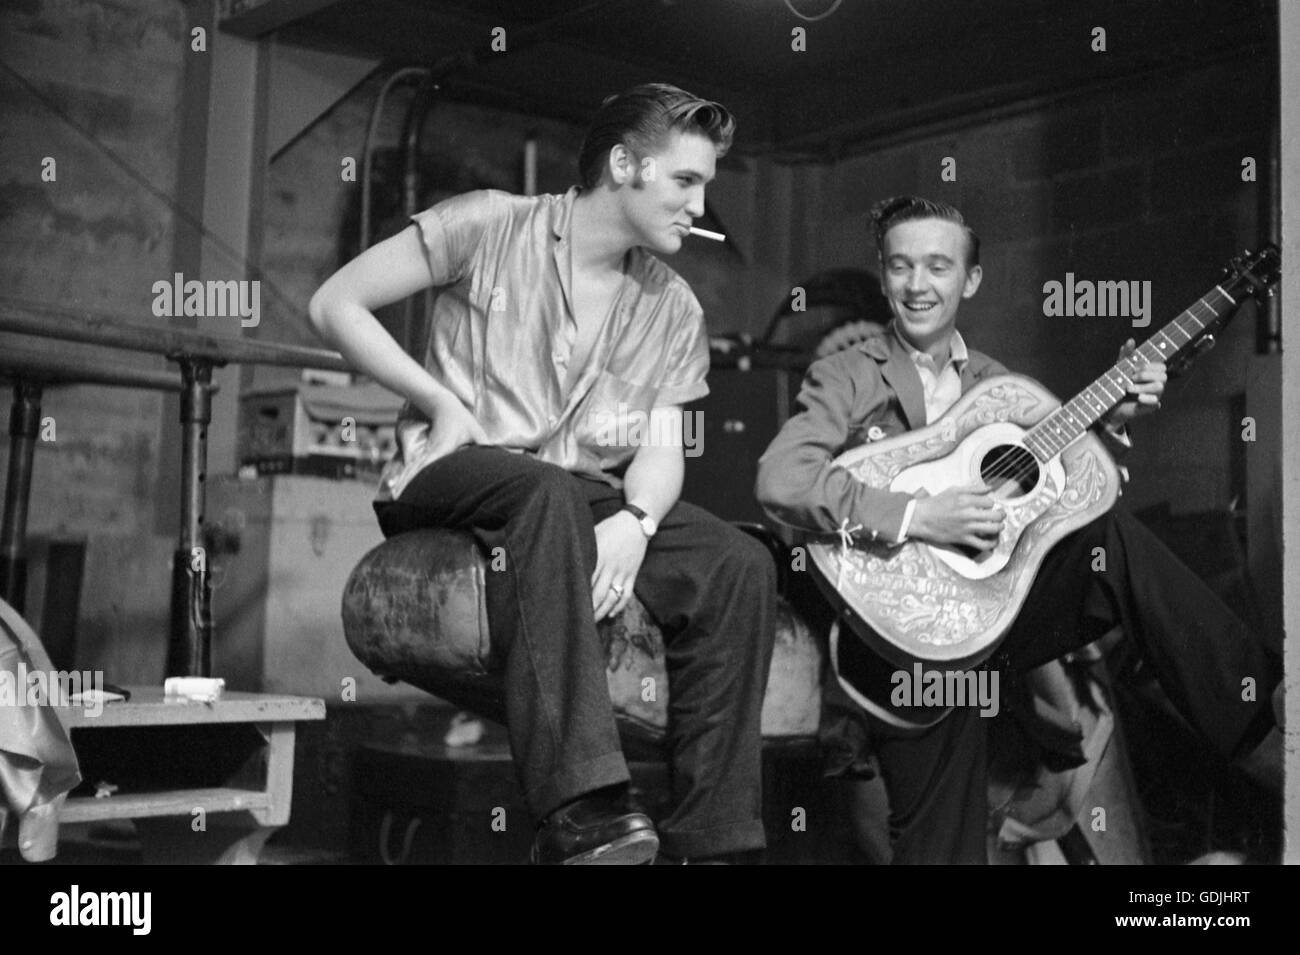 Elvis Presley and his cousin Gene Smith, backstage at the University of Dayton Fieldhouse, May 27, 1956. - Stock Image